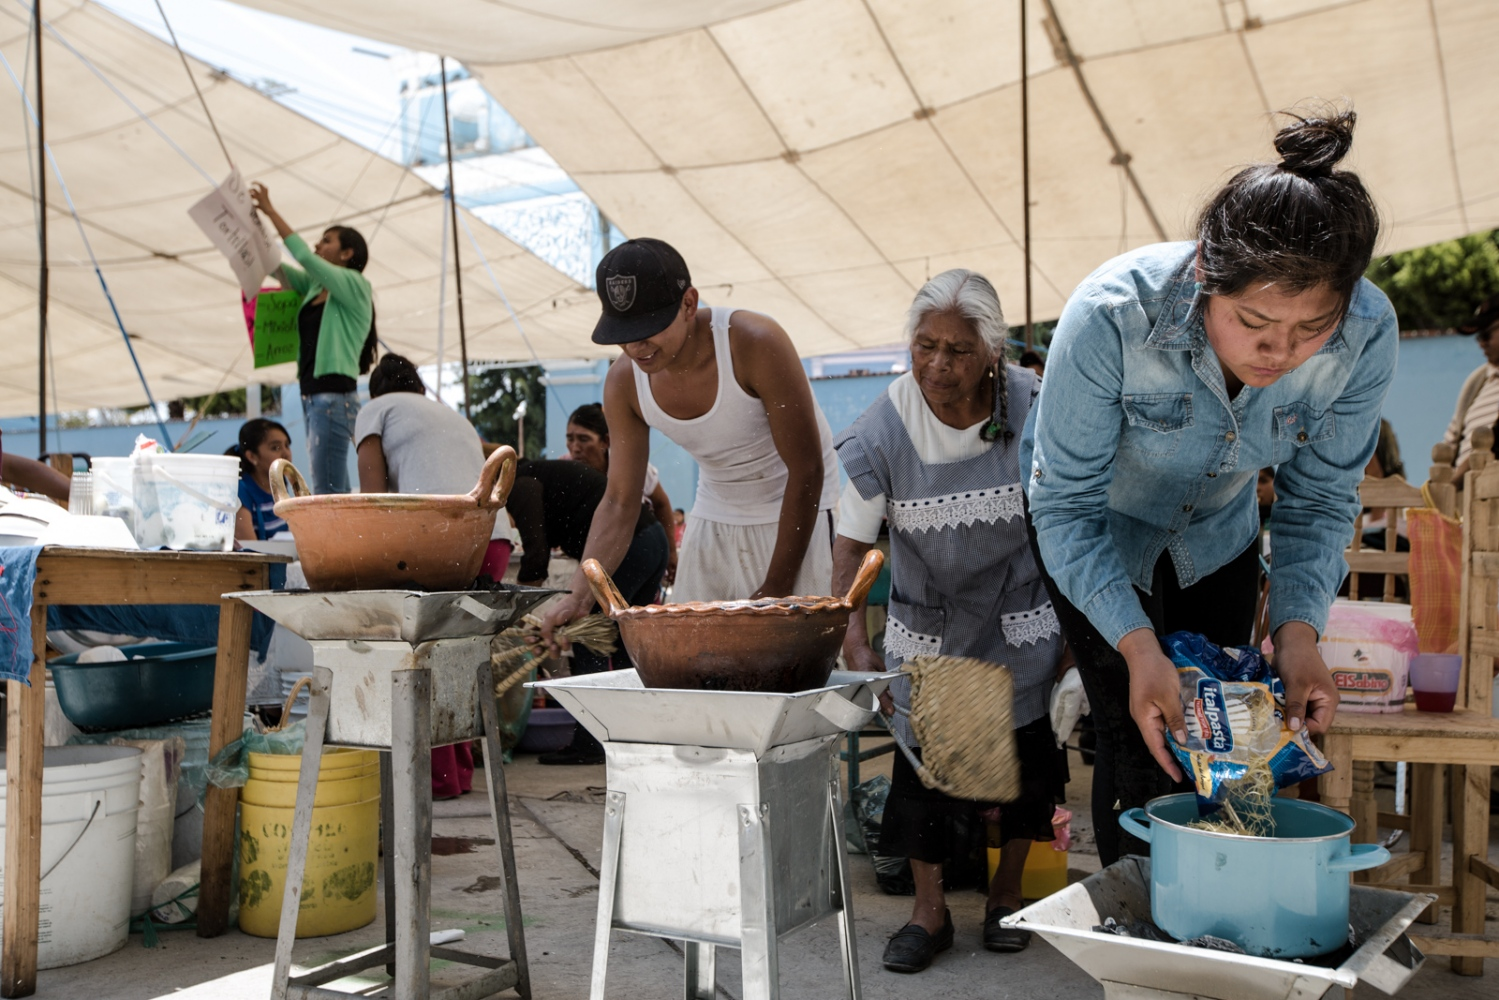 May, 2017. Los Reyes Tlanechicolpan An elder woman and her grandchildren in the preparation of some homemade food, these dishes are typical from the region of Puebla and Cholula. Variations of rice, mole and broth are common.